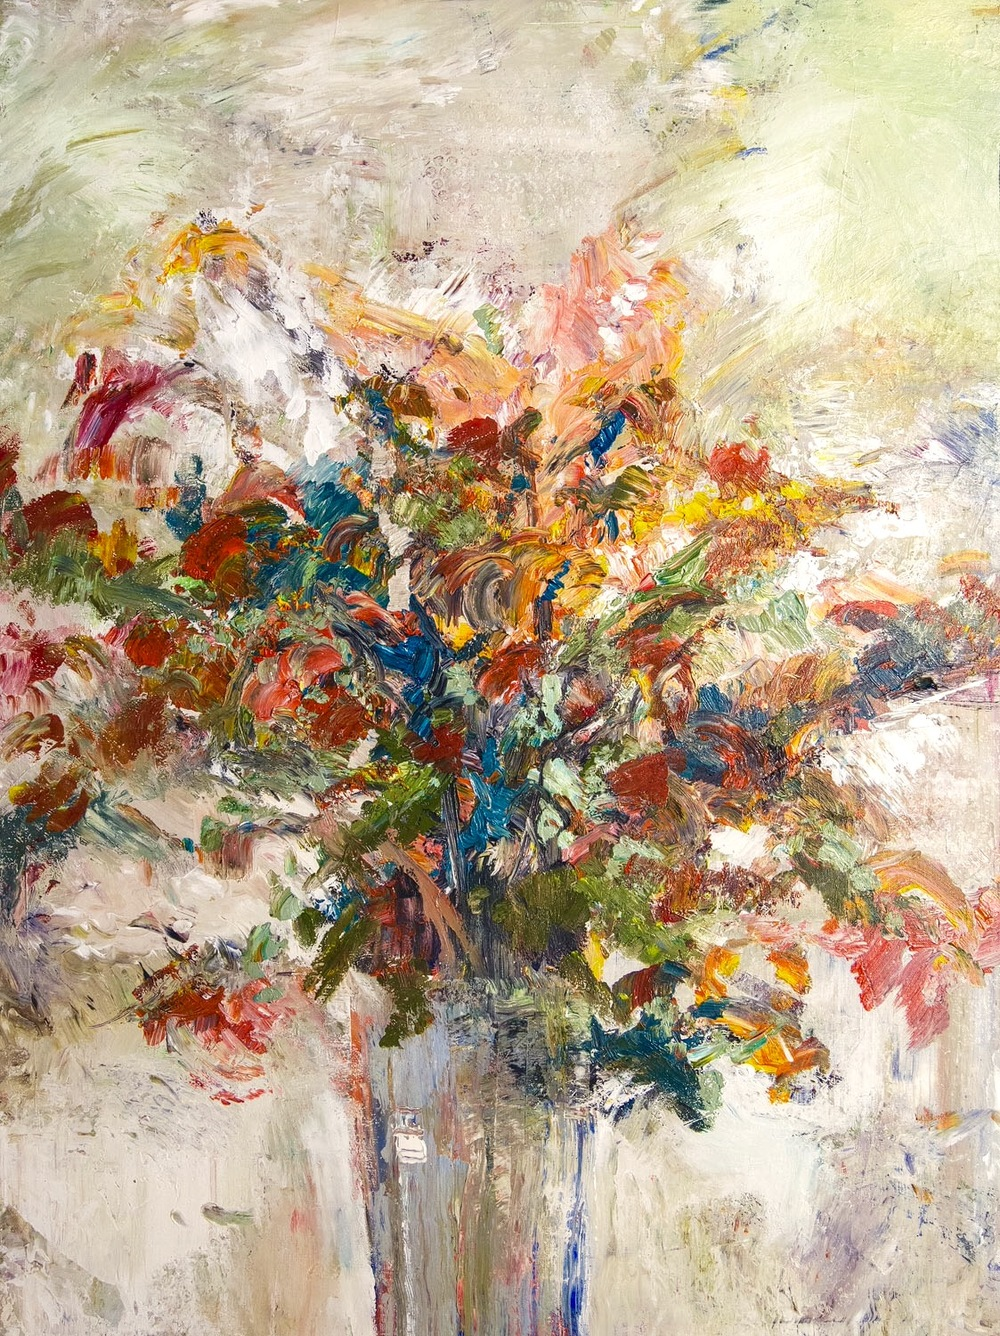 """""""Flowers Bloom"""" by John Beard, 36x48. Inquire about availability at johnbeardfineart@icloud.com"""